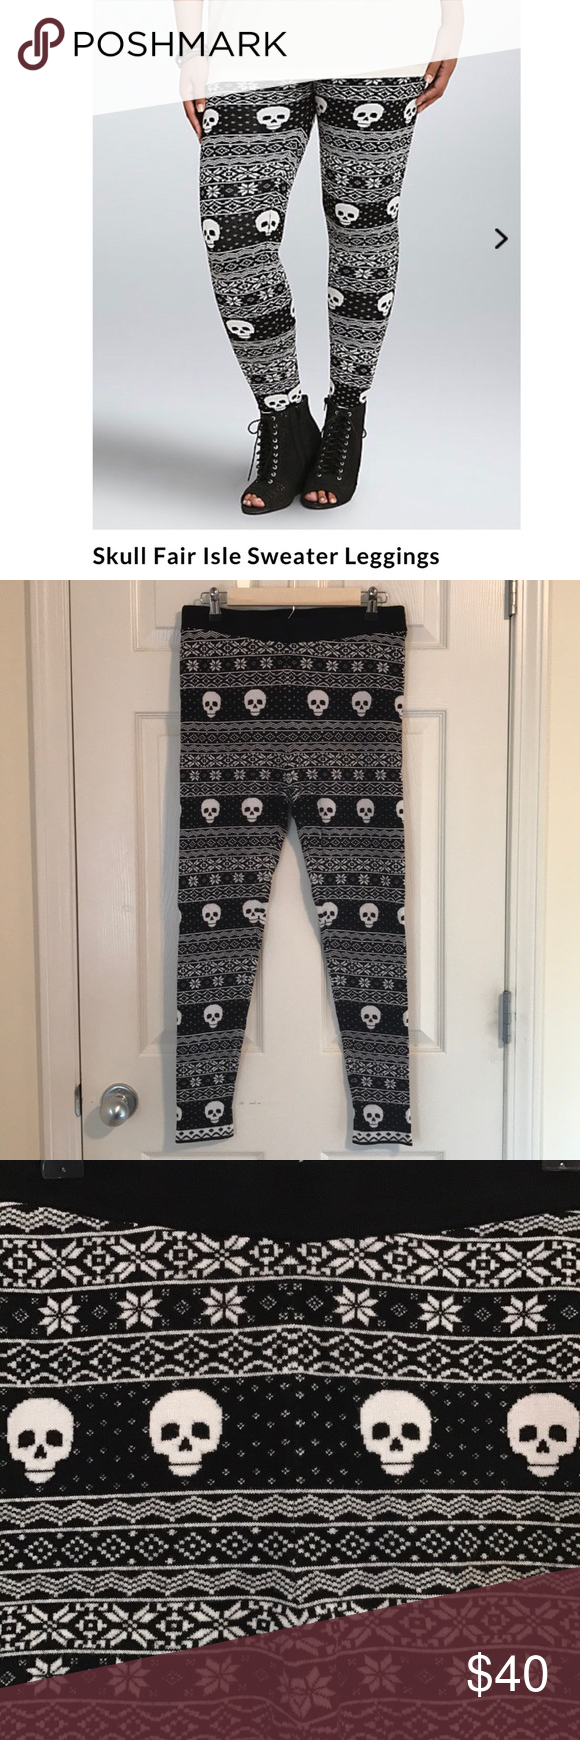 Torrid skull fair isle sweater leggings Torrid fair isle skull ...